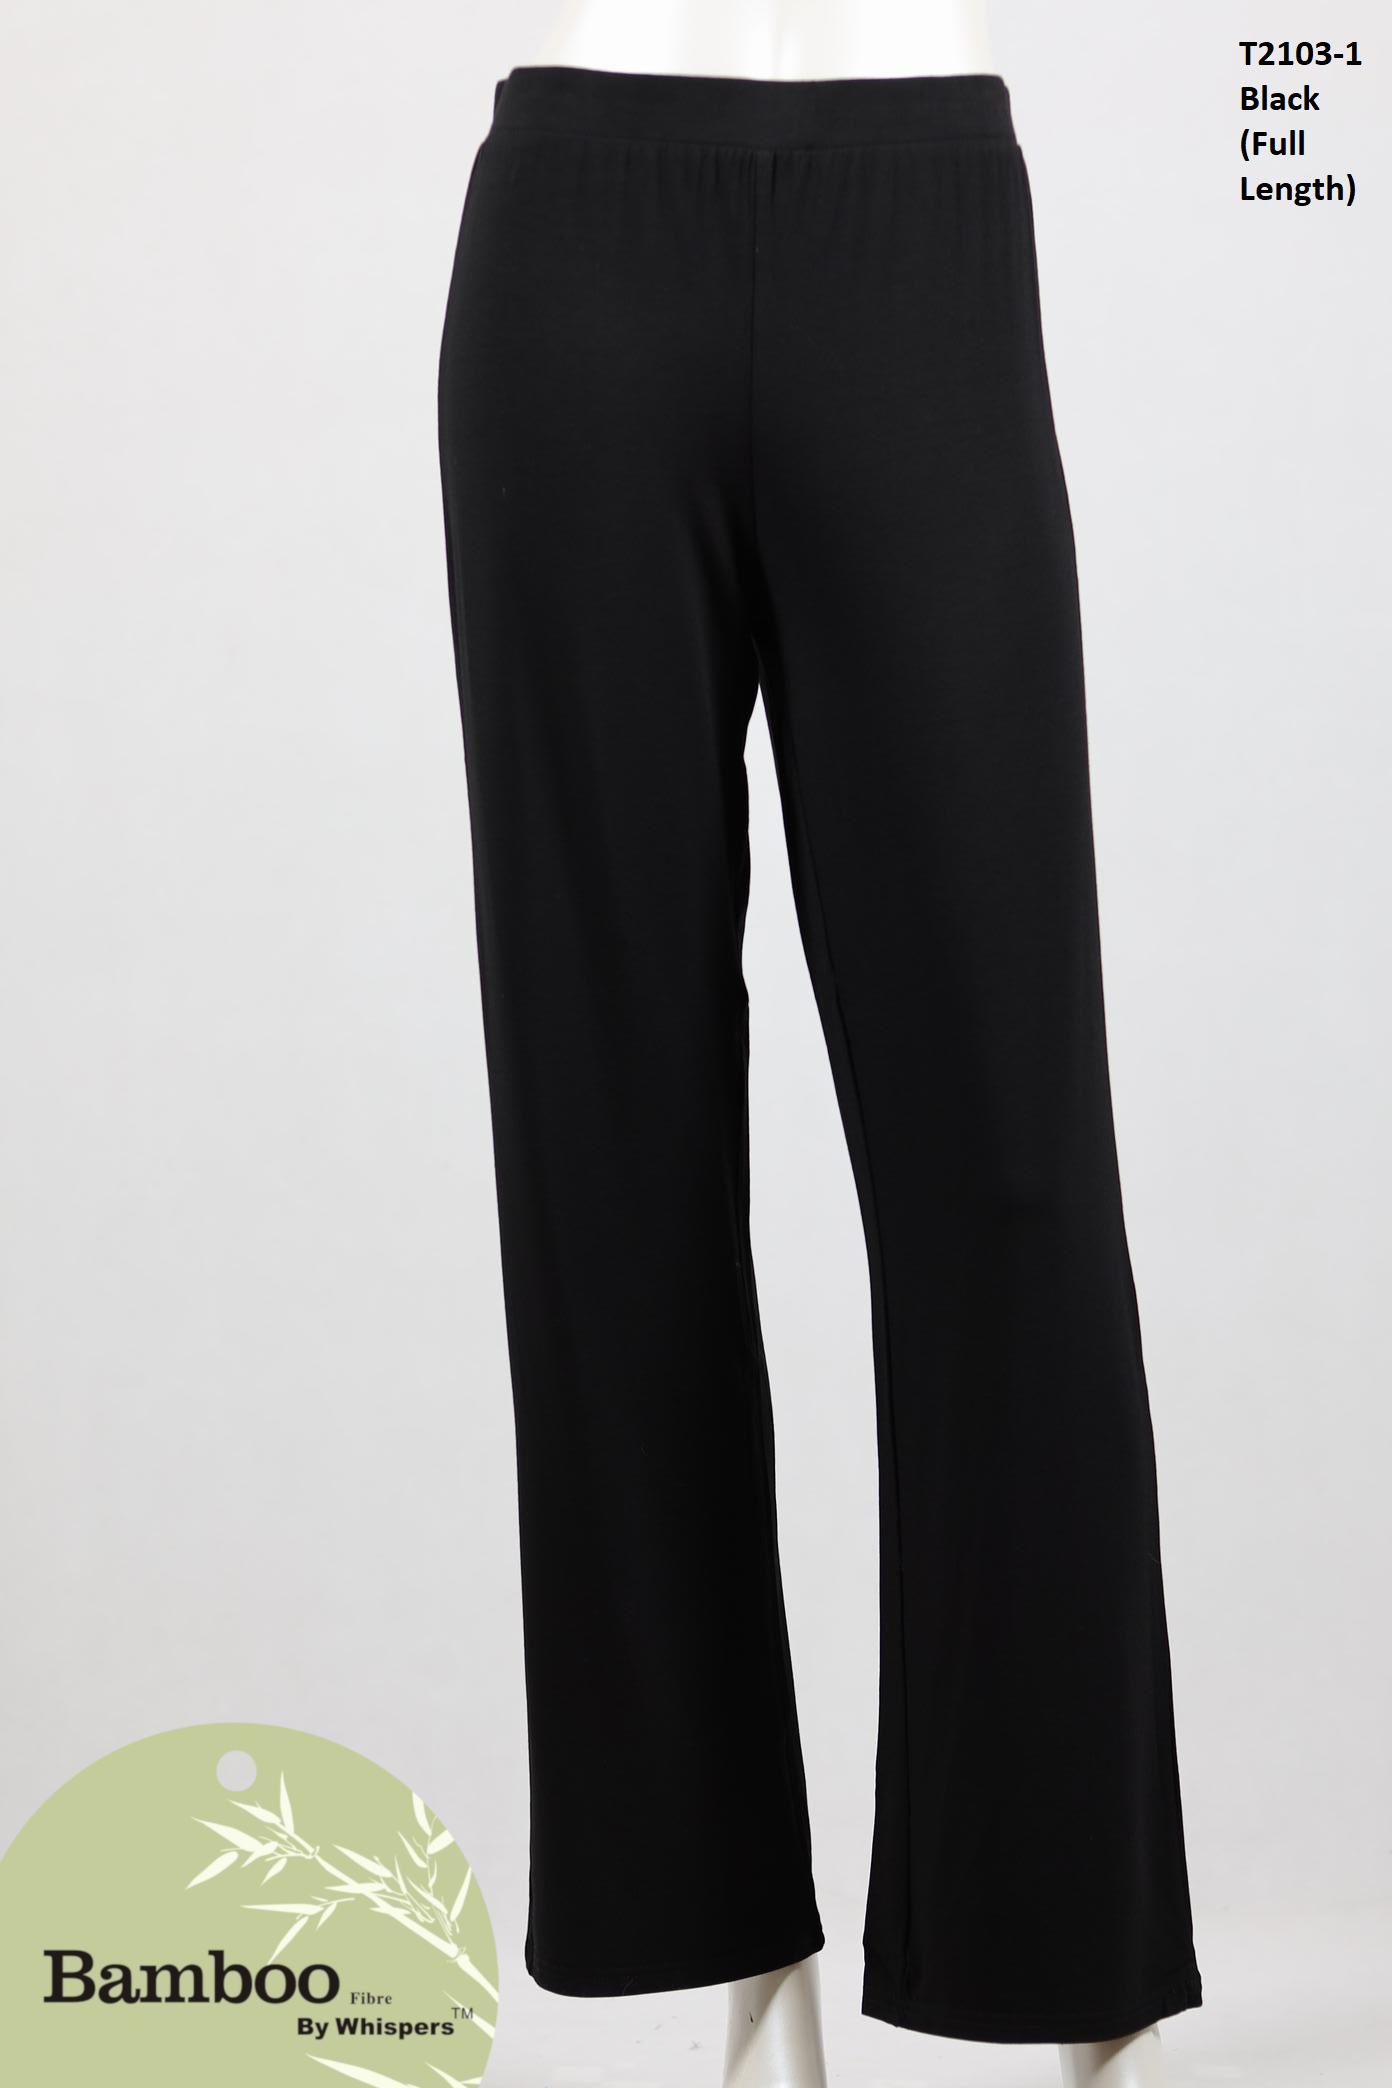 T2103-1-Bamboo Full Length Pant-Black S-XL.JPG